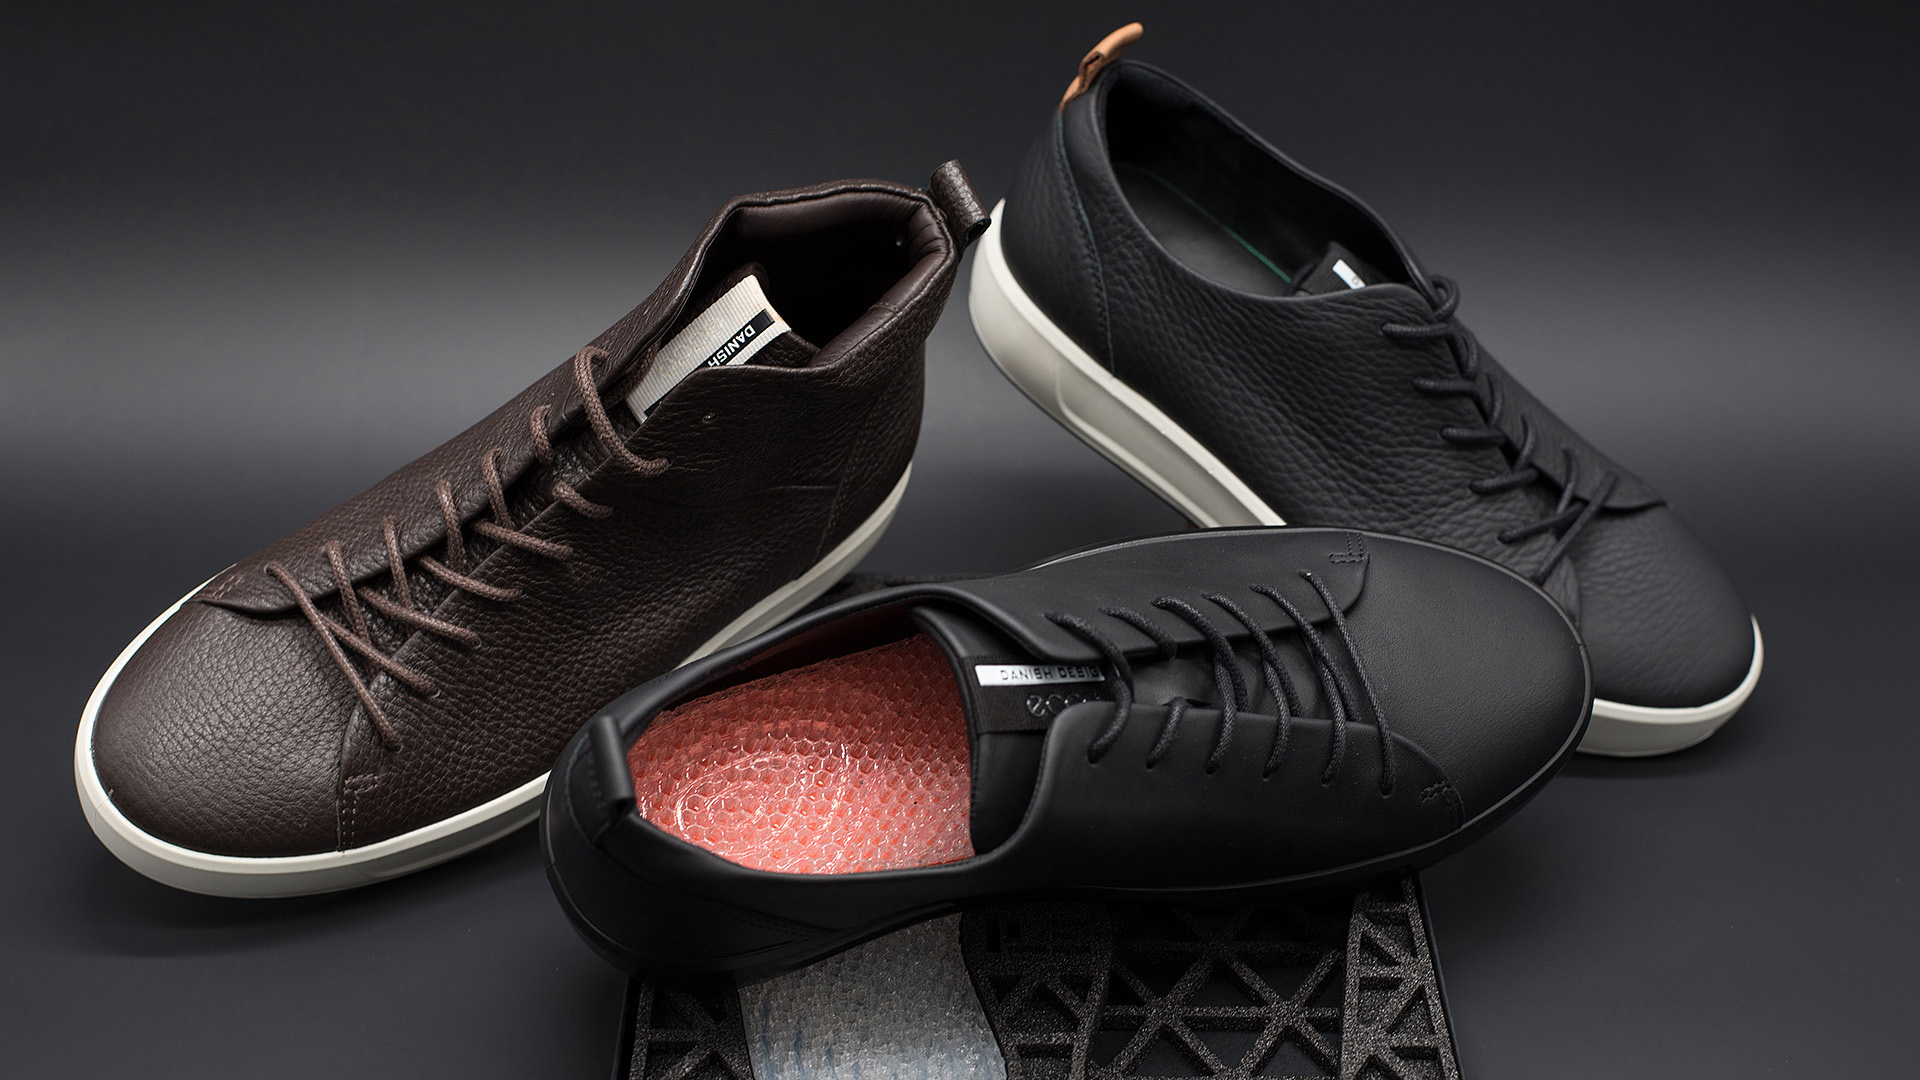 ECCO Shoes to Offer 'Augmented' Quant-U 3D Printed Midsoles | All3DP